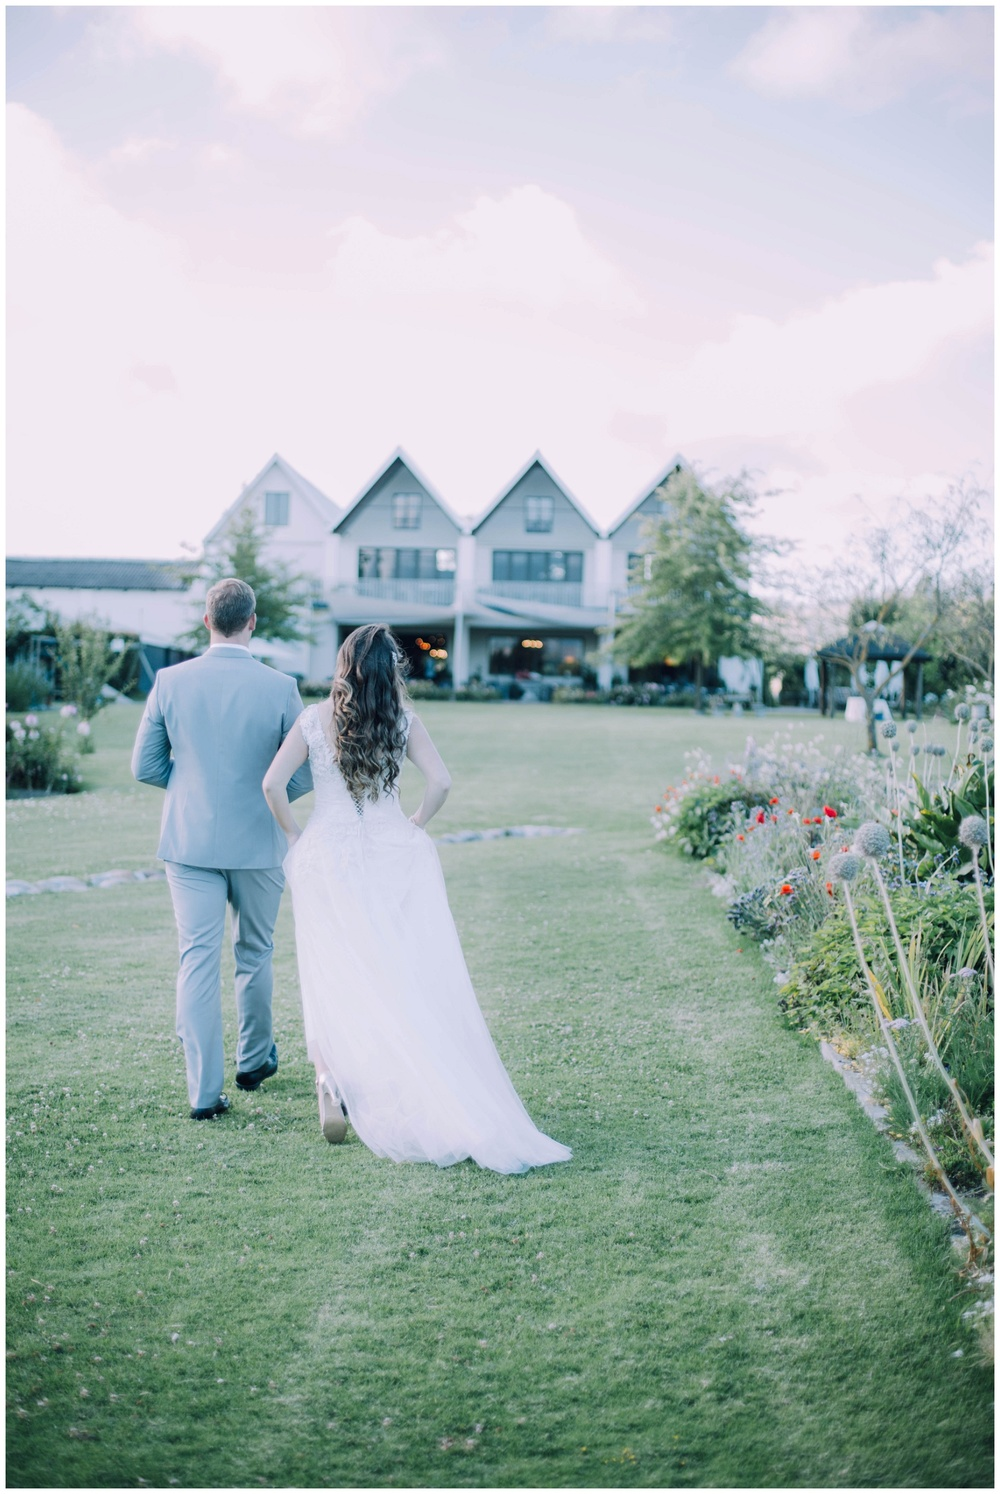 Ronel Kruger Cape Town Wedding and Lifestyle Photographer_8844.jpg